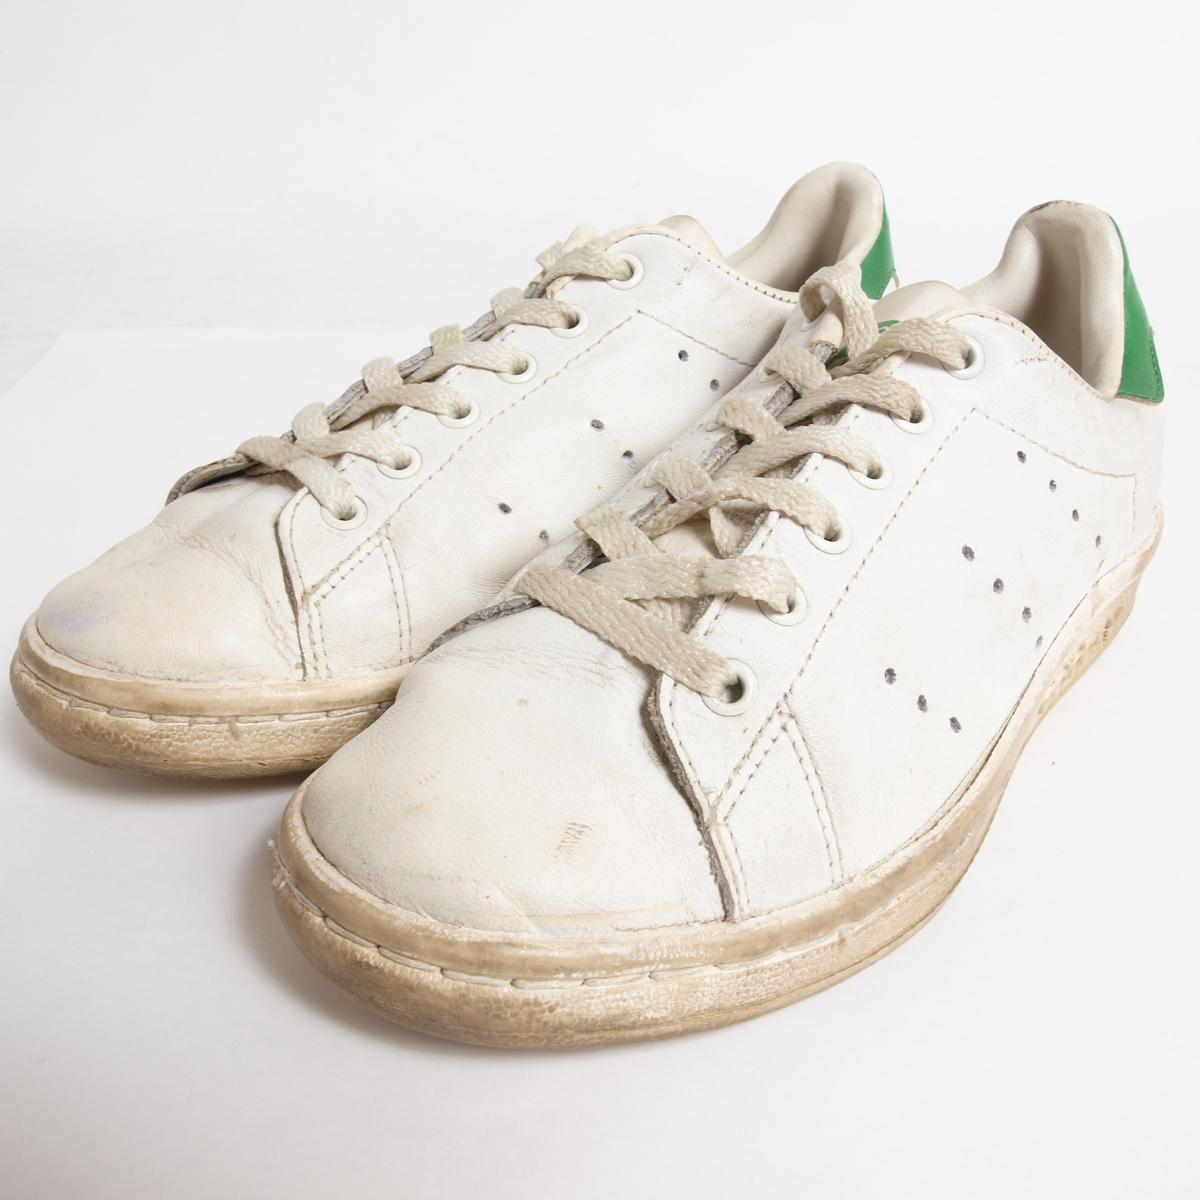 Sneakers Lady's 22.0cm vintage adidas /bok8235 made in Adidas STAN SMITH Stan Smith France